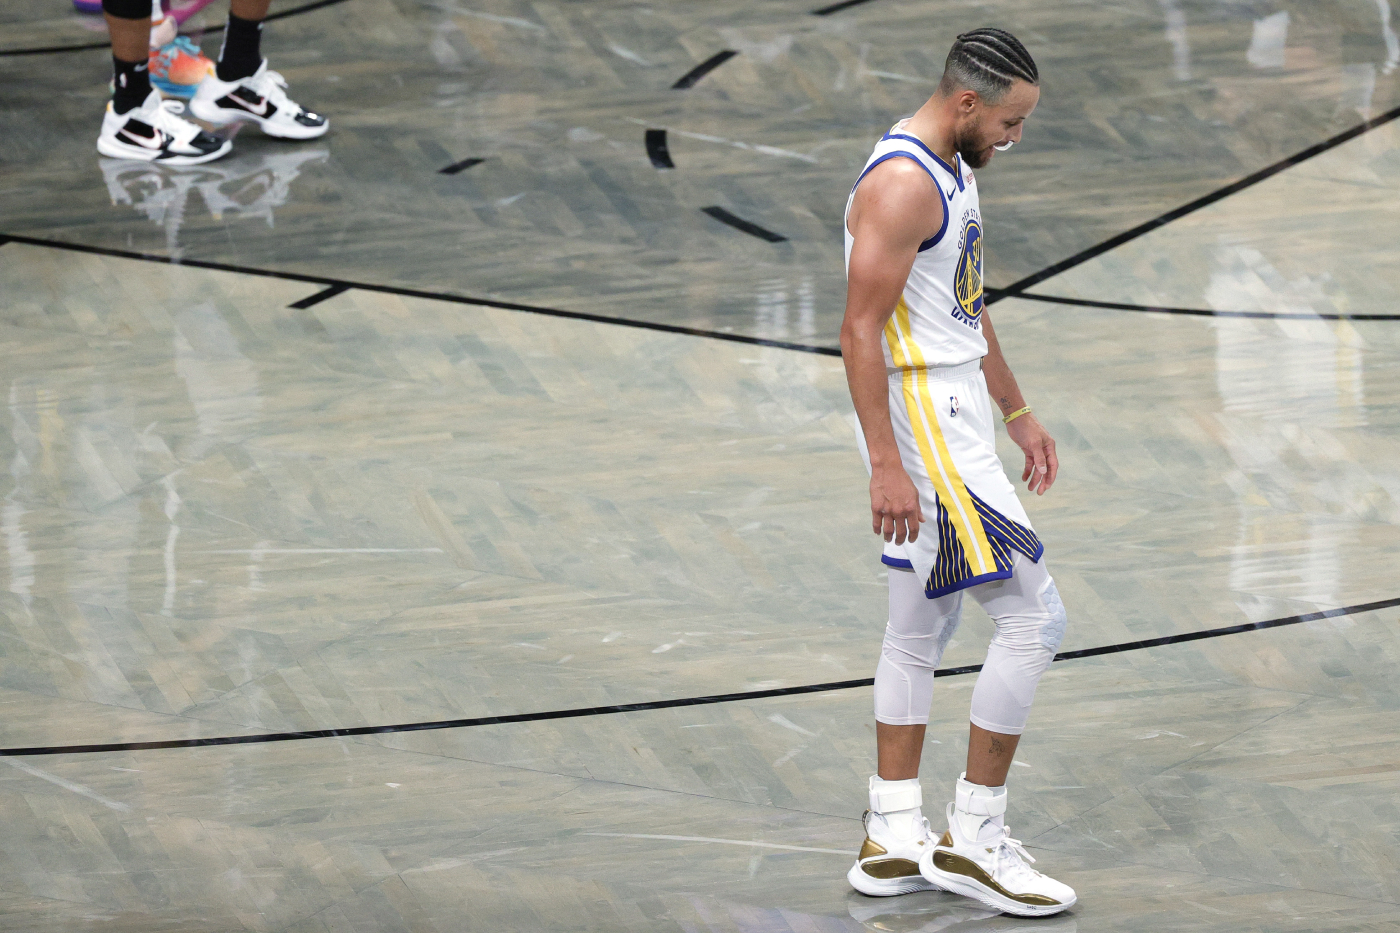 The Golden State Warriors haven't looked too great to start the 2020-21 season. Now, they are receiving some bad news about Marquese Chriss.